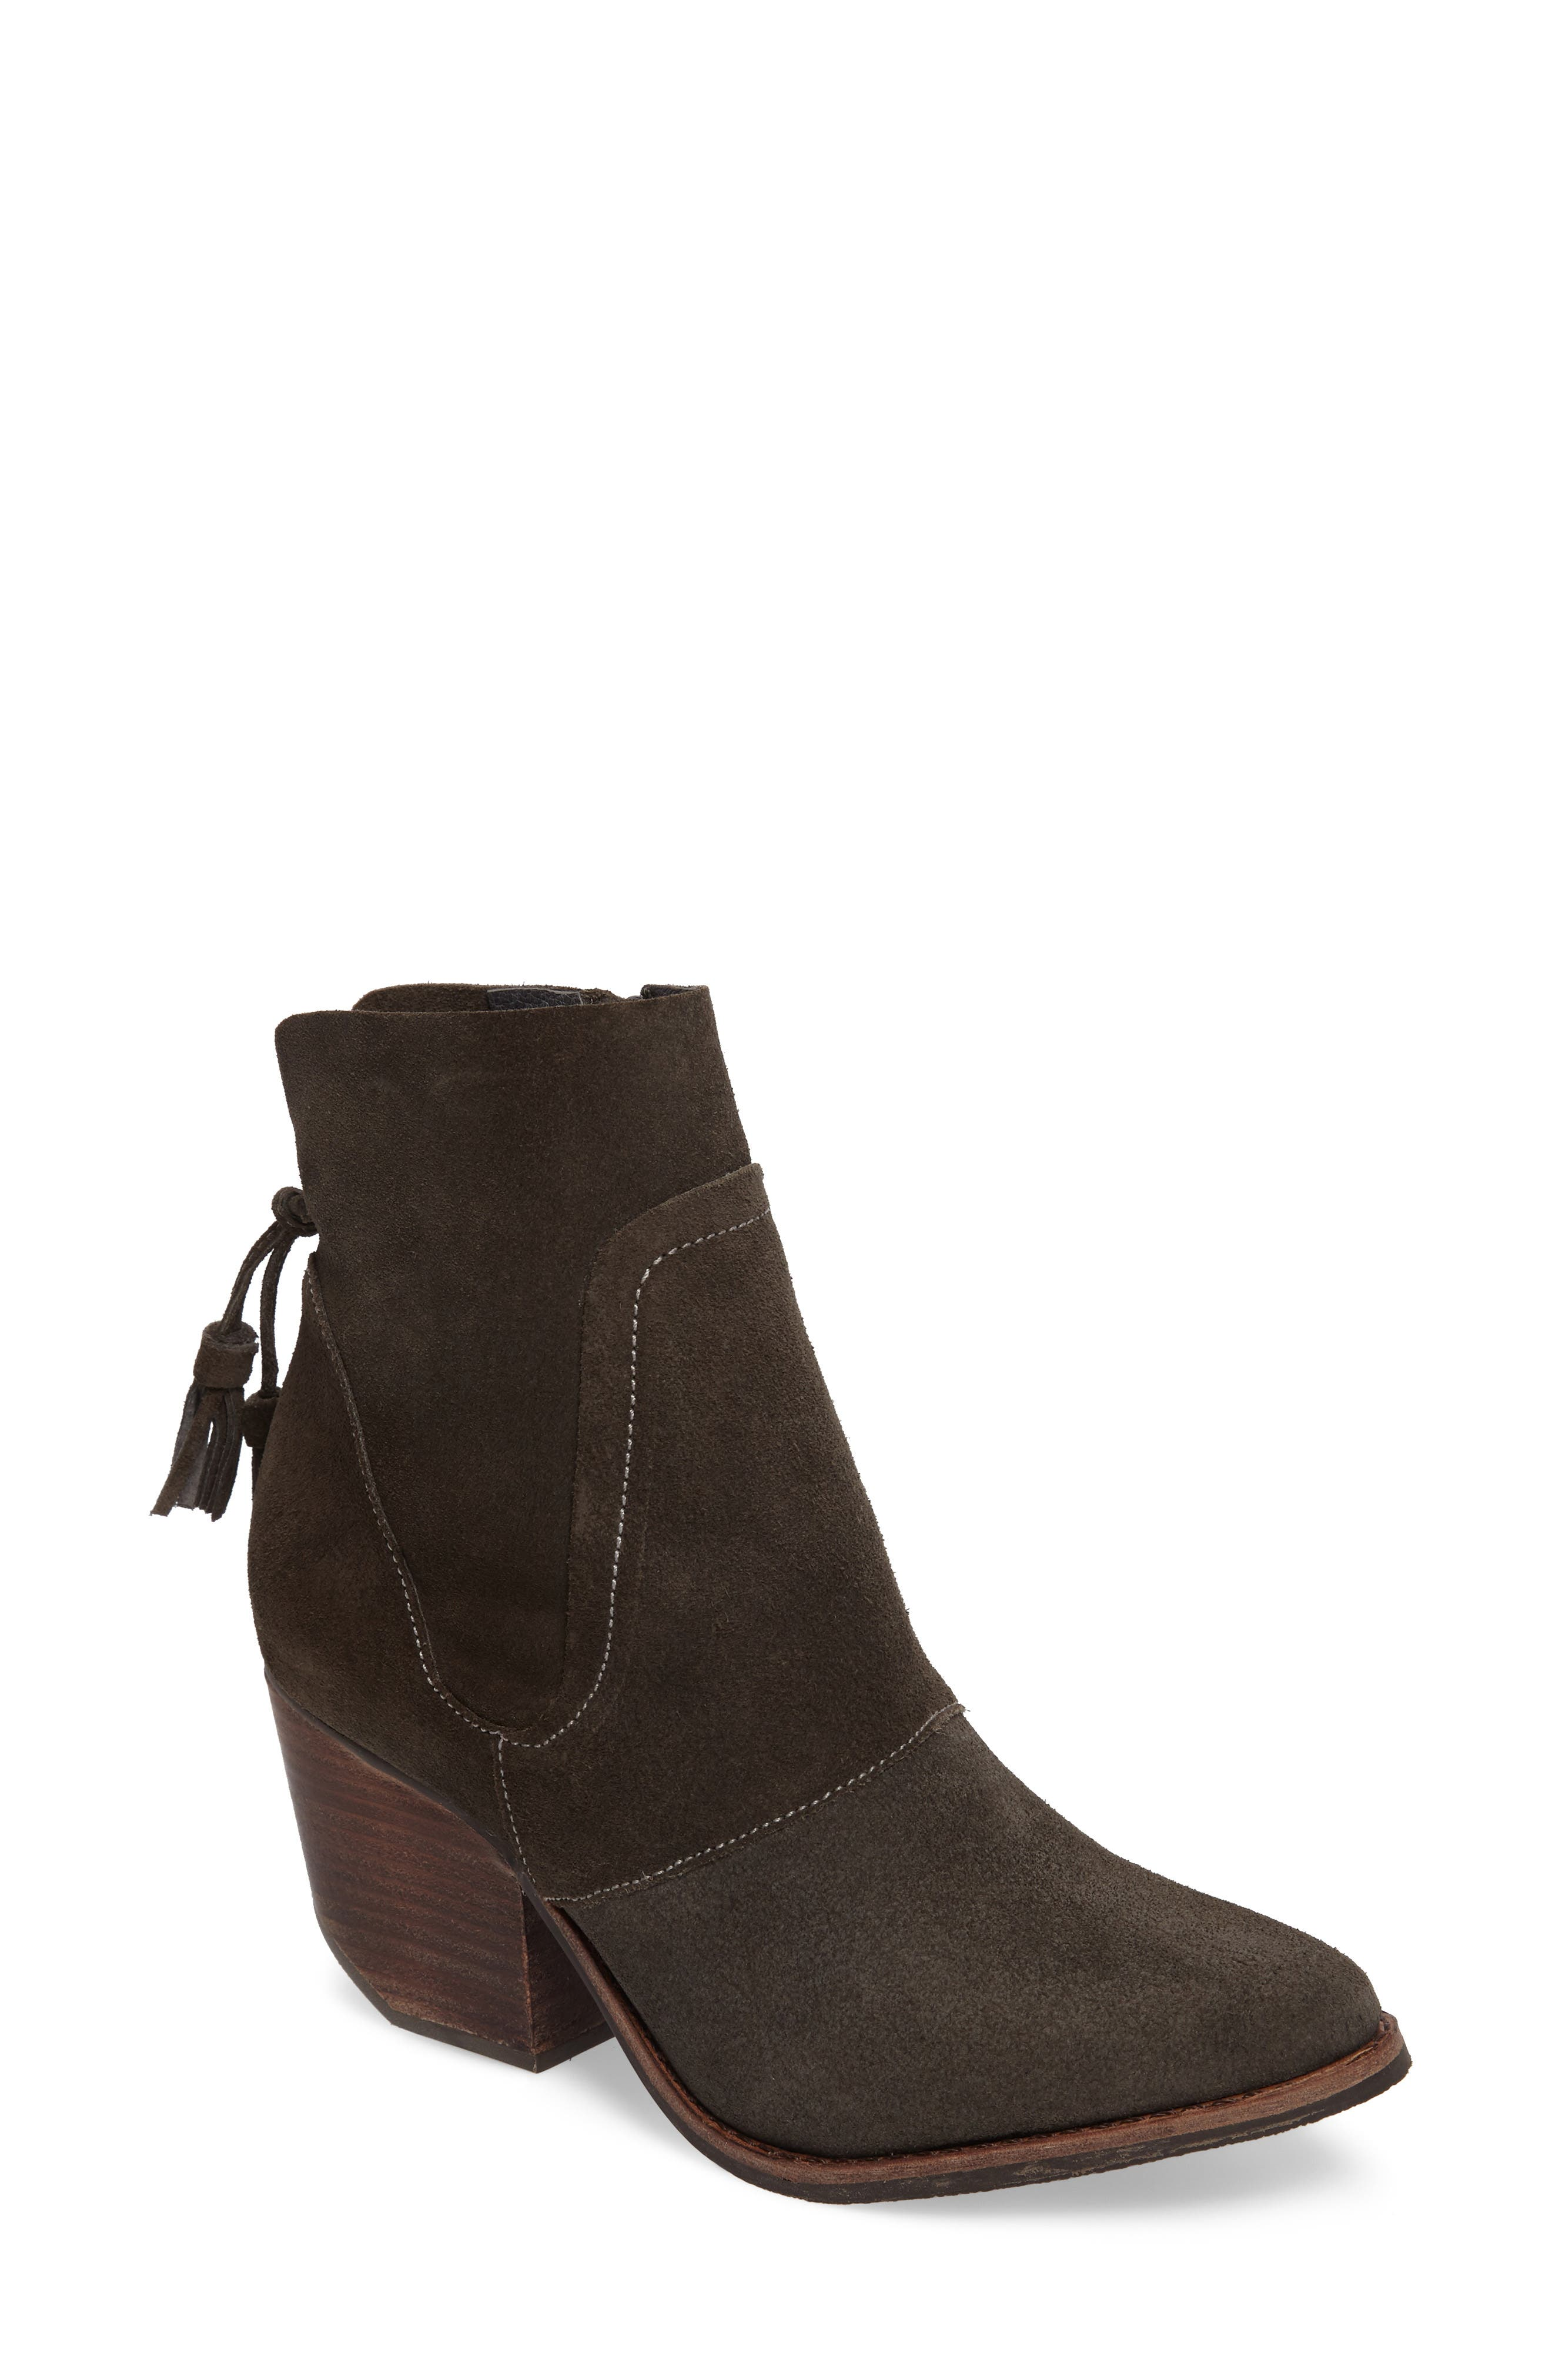 Laney Notched Heel Bootie, Main, color, 020